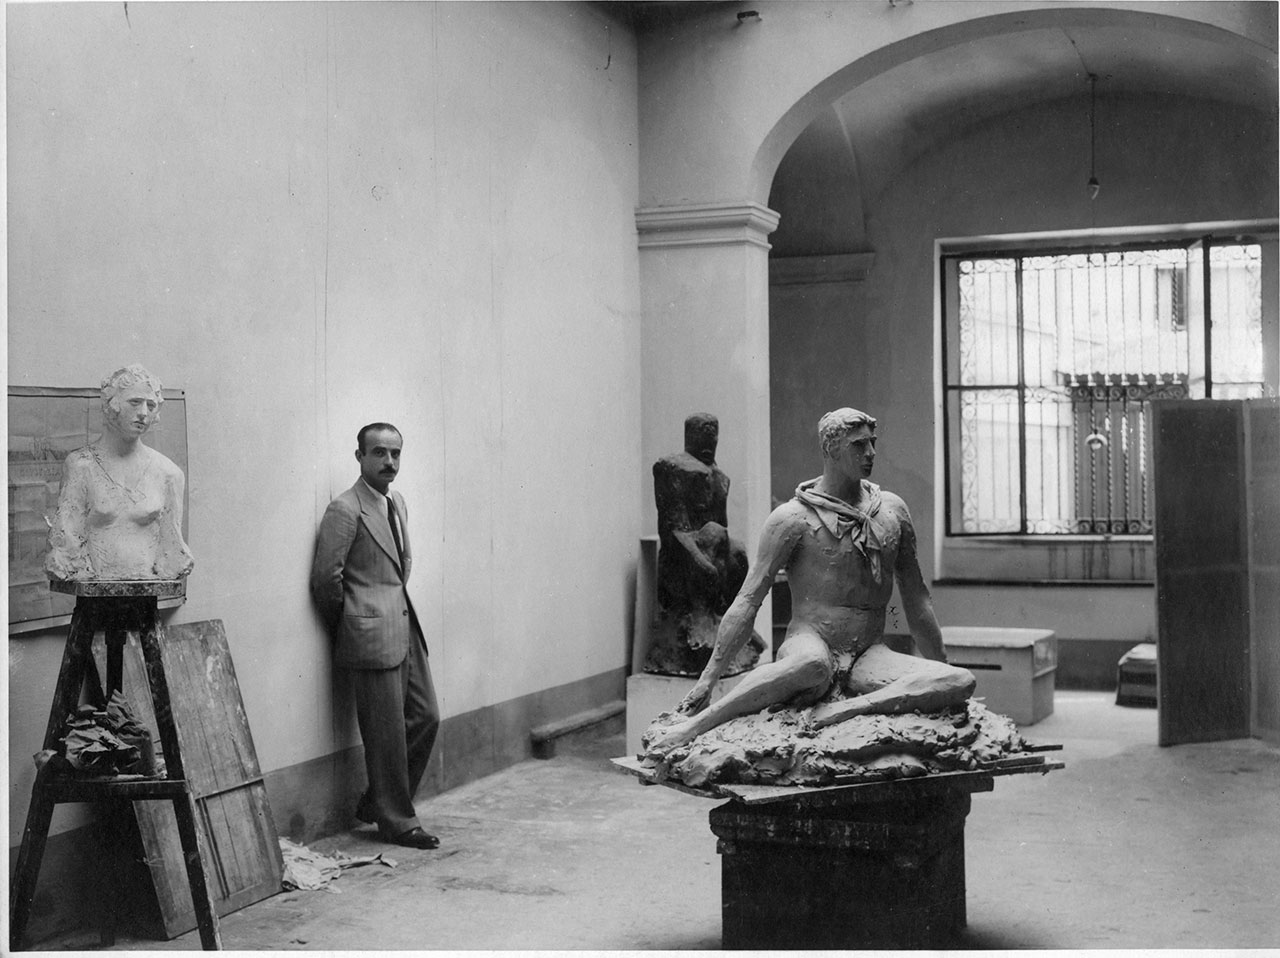 Lucio Fontana in his studio at via De Amicis, Milan 1933. From left to right: Busto di Signorina, Uomo Nero, Uomo seduto (or Atleta in Attesa or Discobolo) for the art works © Fondazione Lucio Fontana © Fondazione Lucio Fontana, Milano by SIAE 2018.